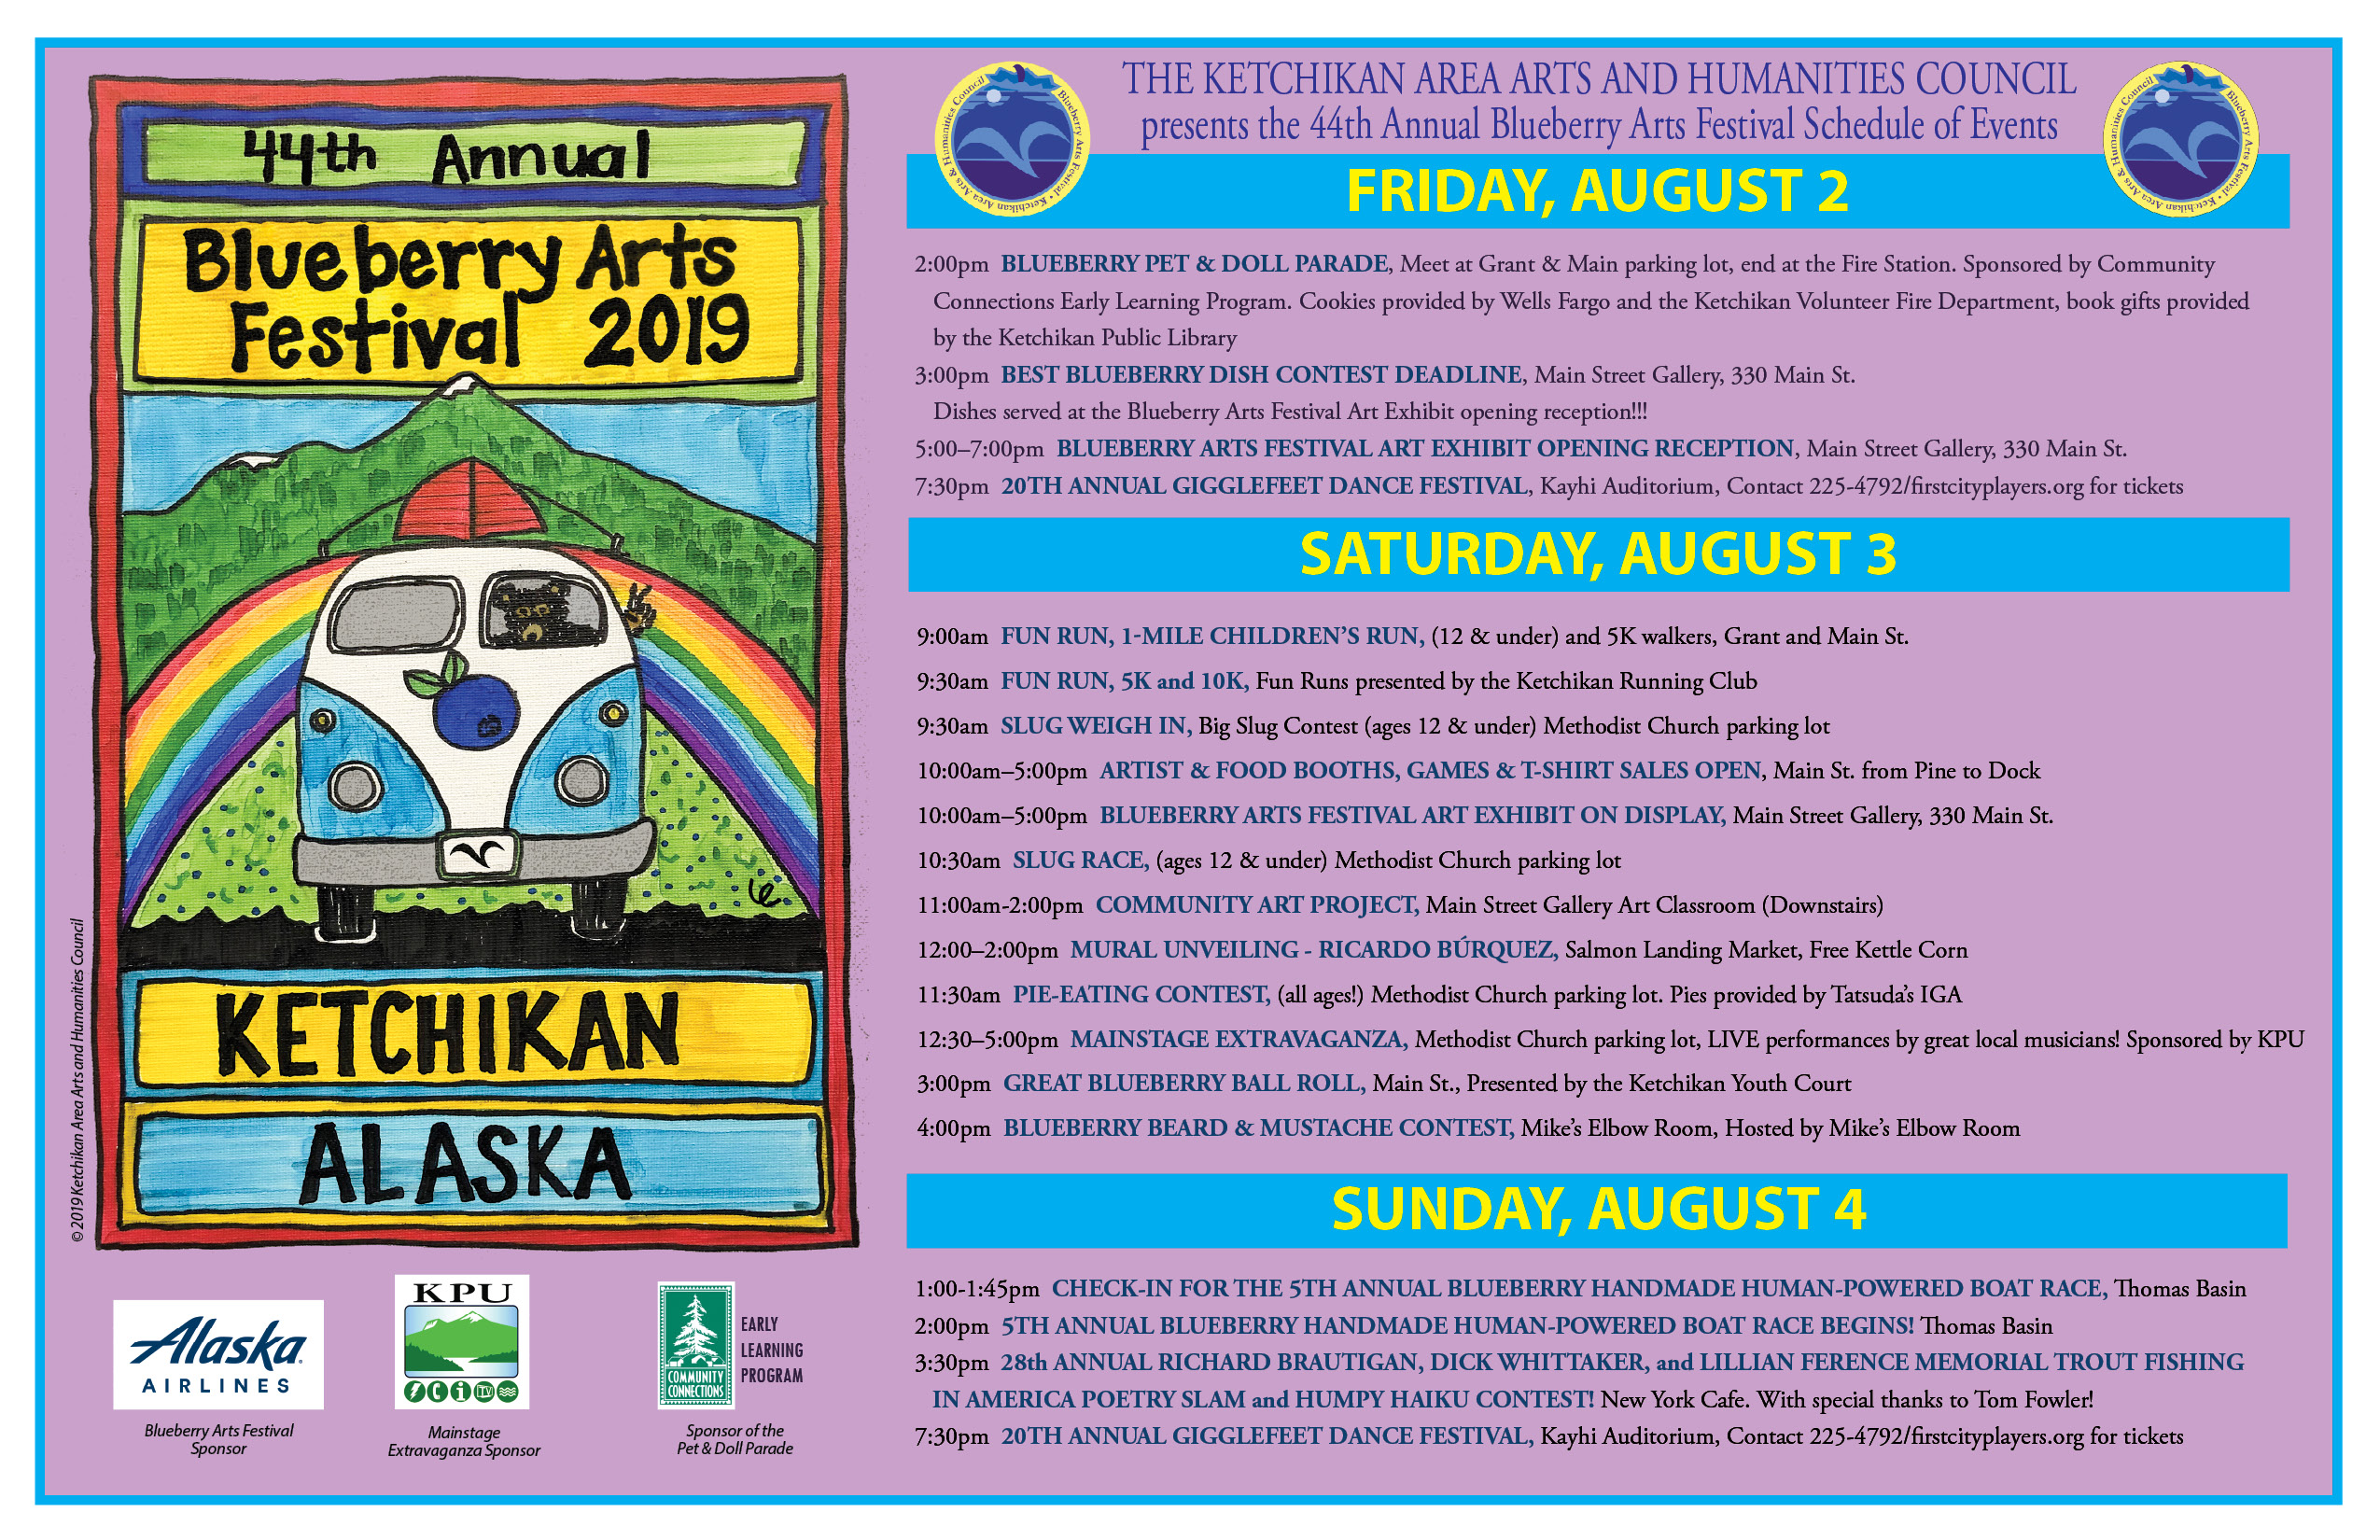 Blueberry Arts Festival Schedule